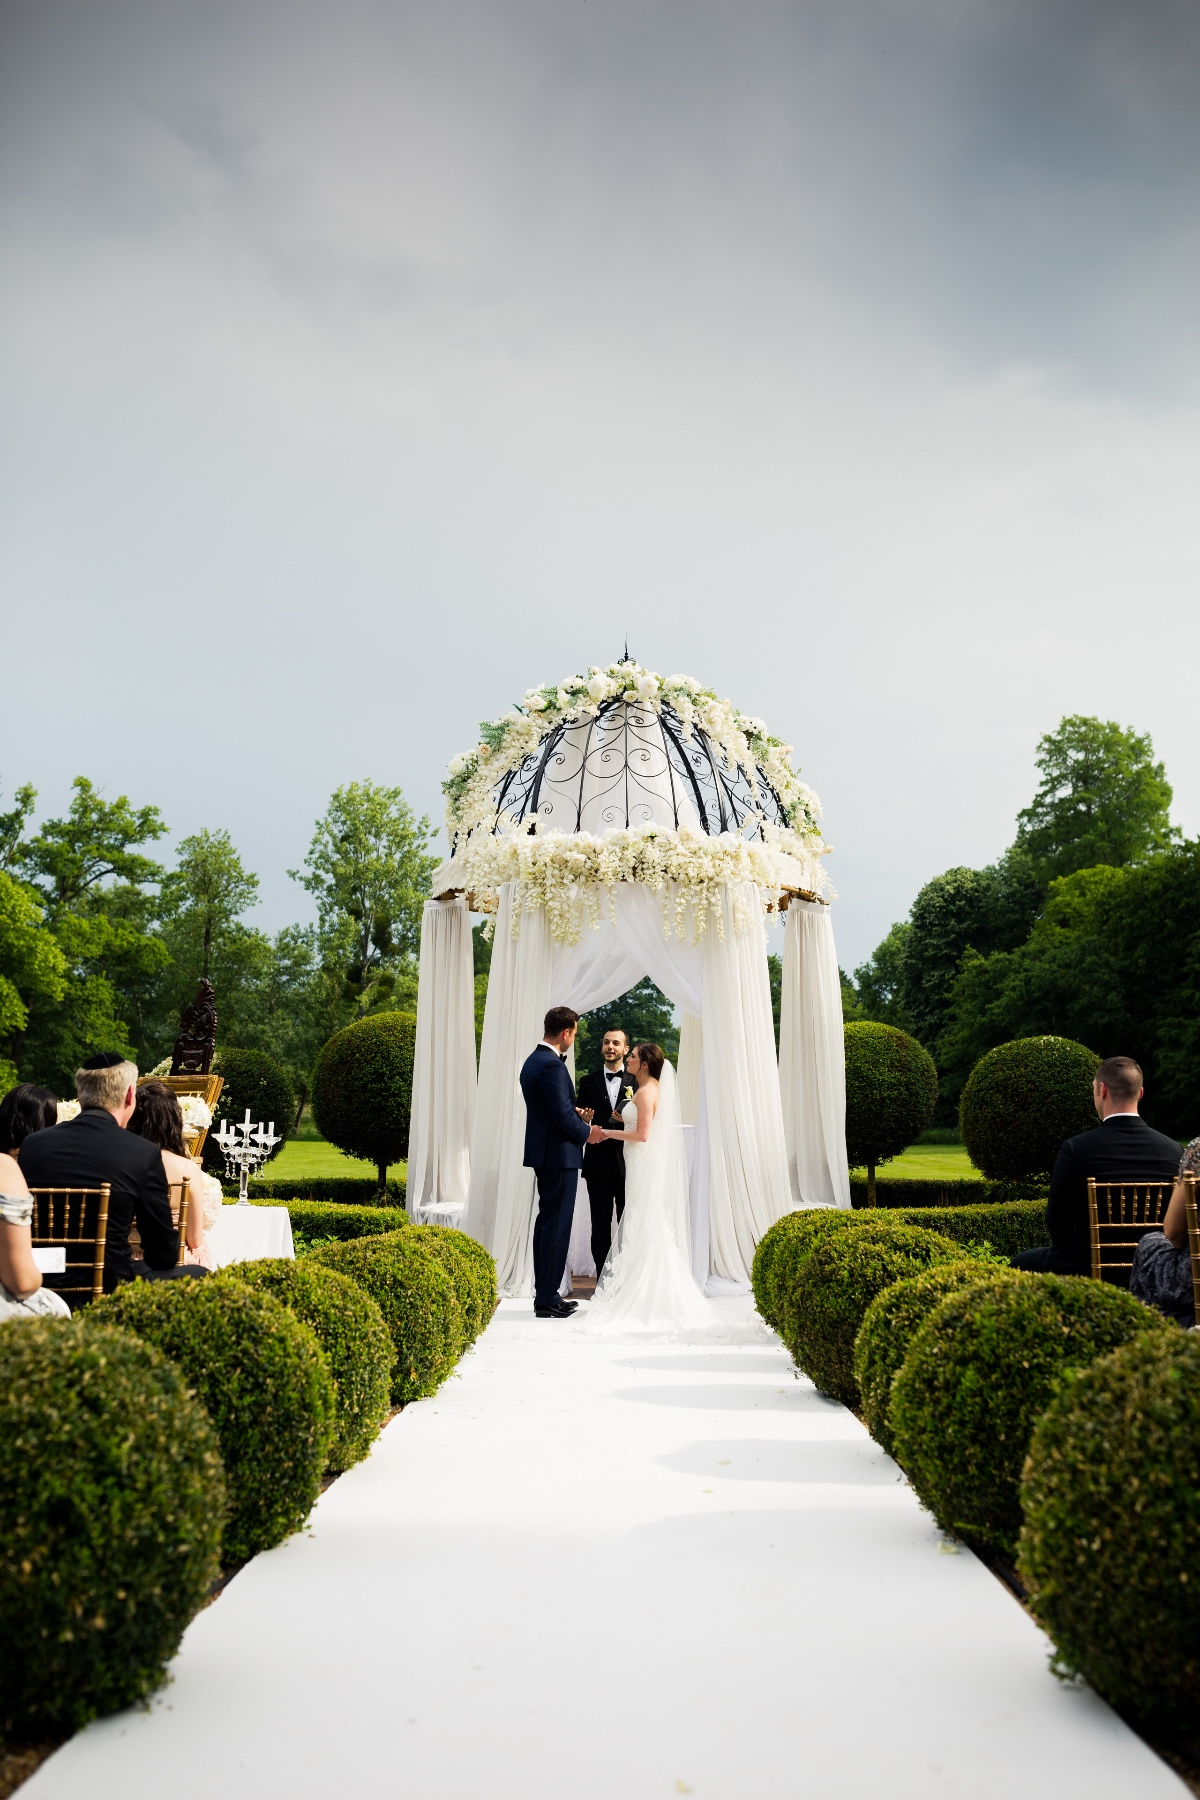 outdoor wedding ceremony in a manicured french garden